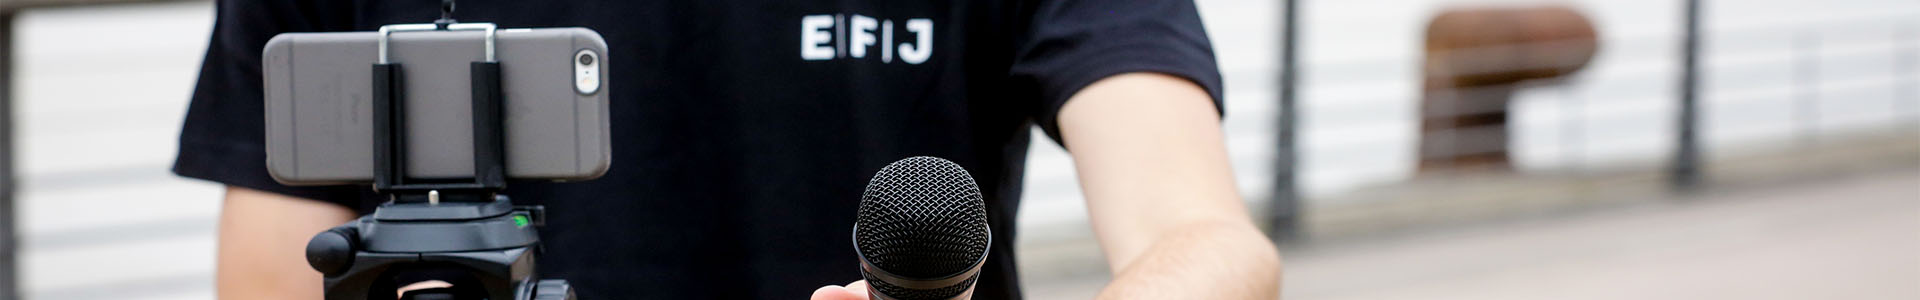 Devenir Journaliste, Un Métier Passion - Ecole Journalisme EFJ